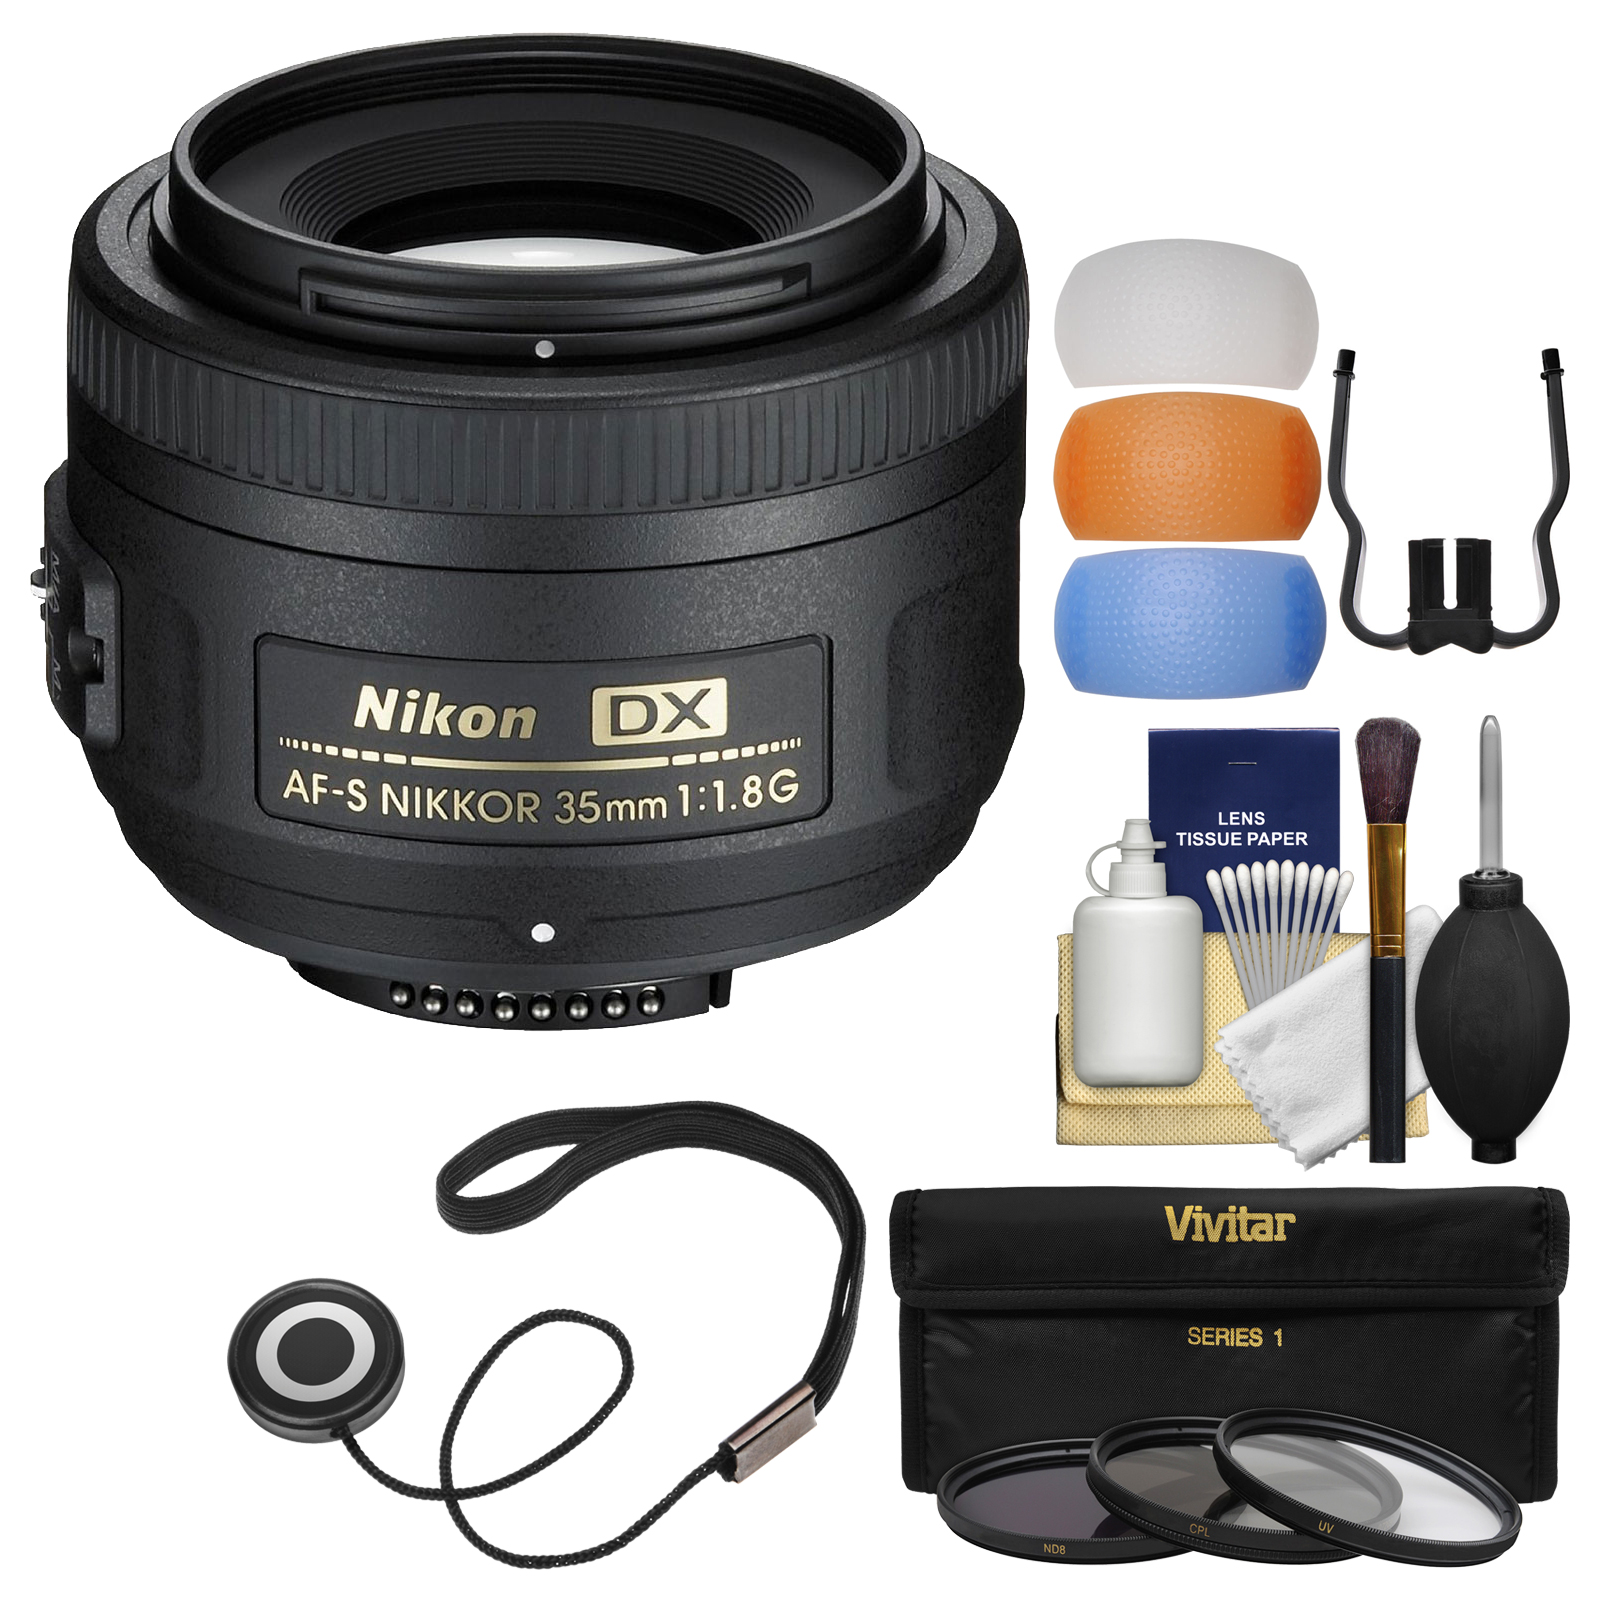 Nikon 35mm f/1.8G DX AF-S Nikkor Lens - Factory Refurbished with 3 (UV/CPL/ND8) Filters + Diffuser Filter Set + Kit